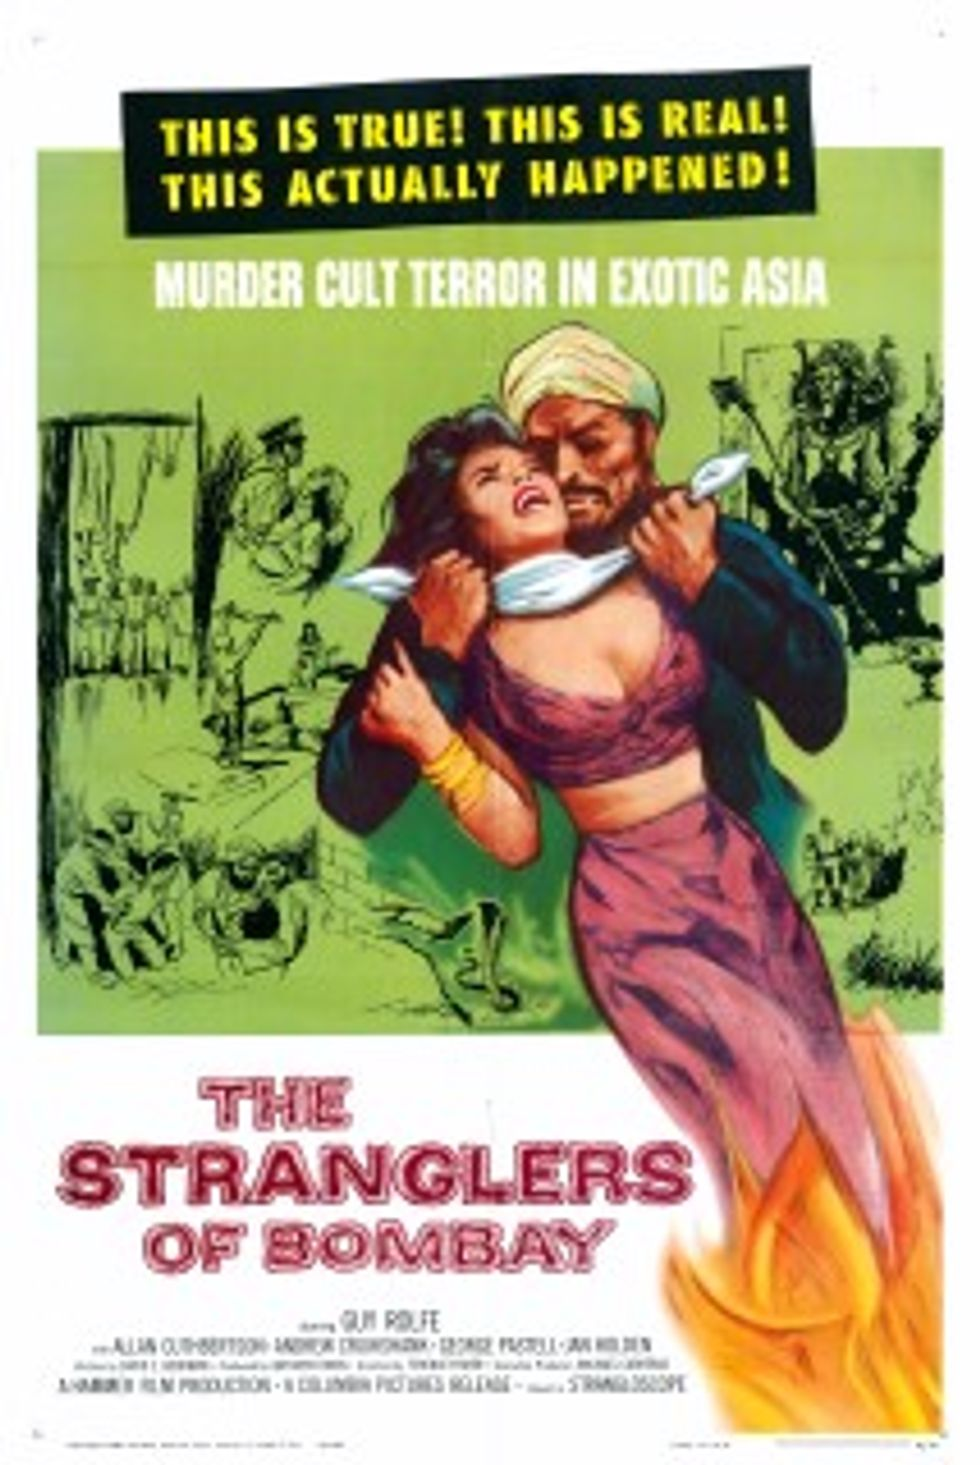 Hammer DVDs: The Nanny and The Strangler of Bombay!